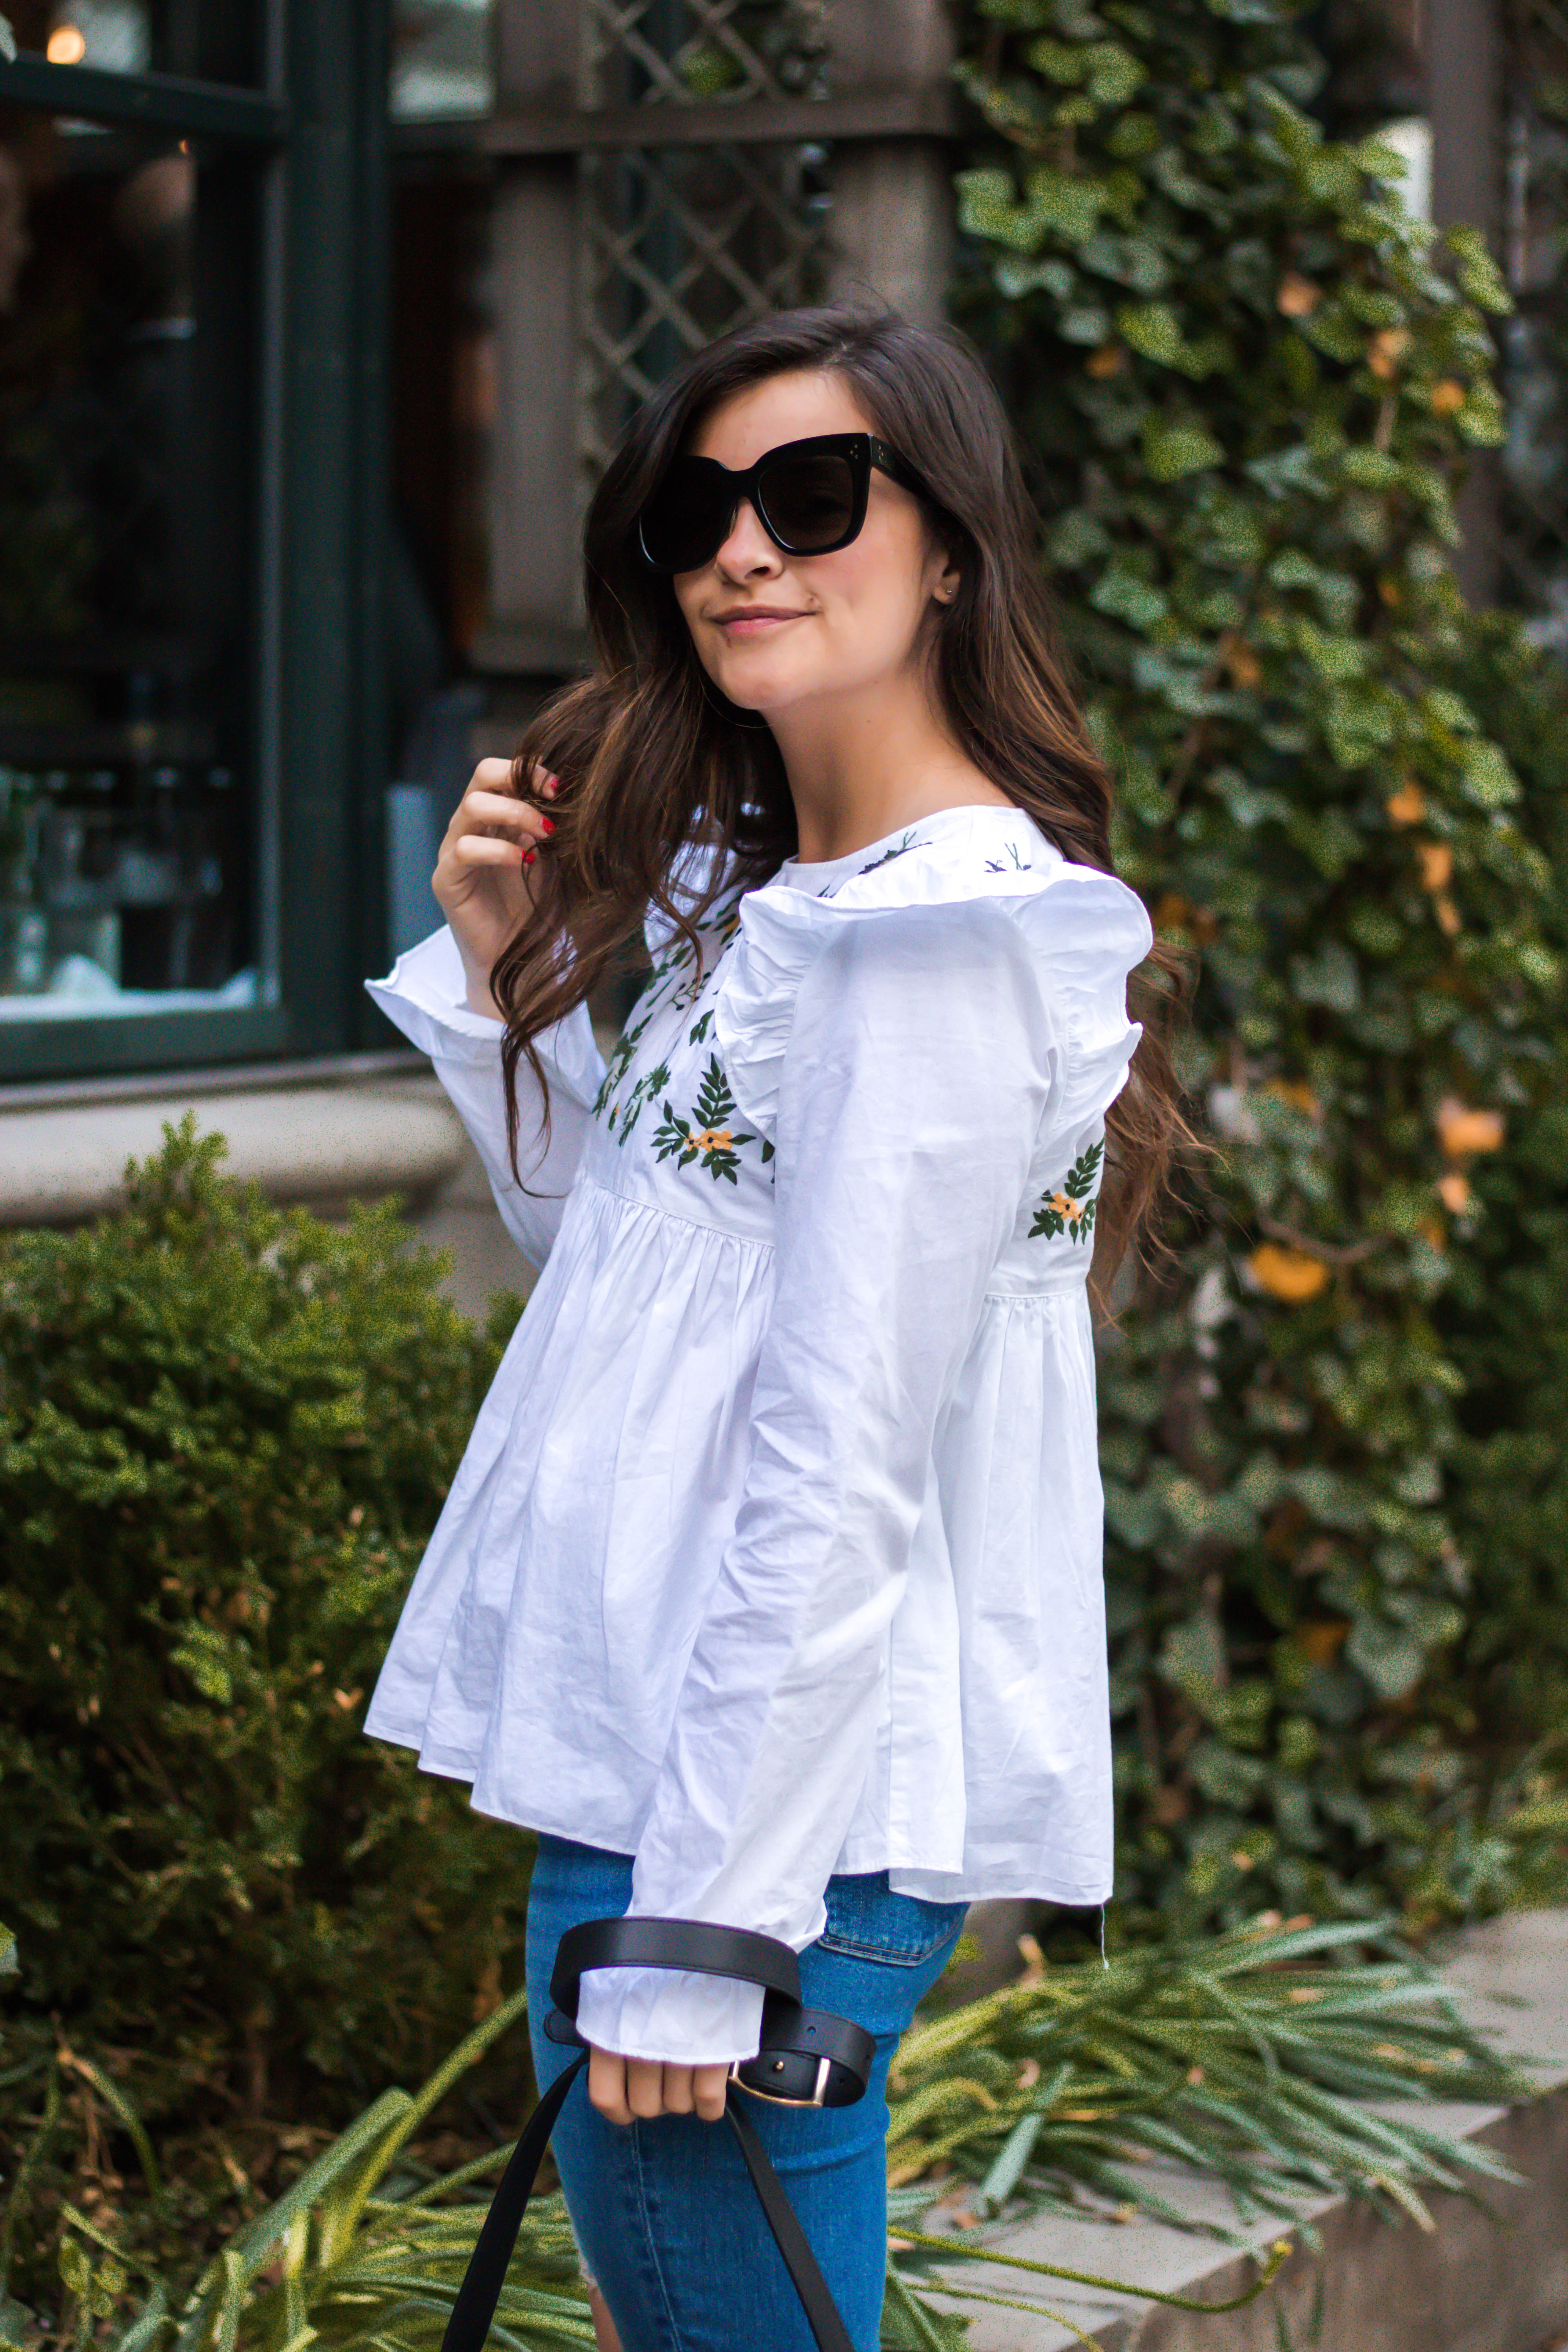 Embroidery Trend 2017: Tops